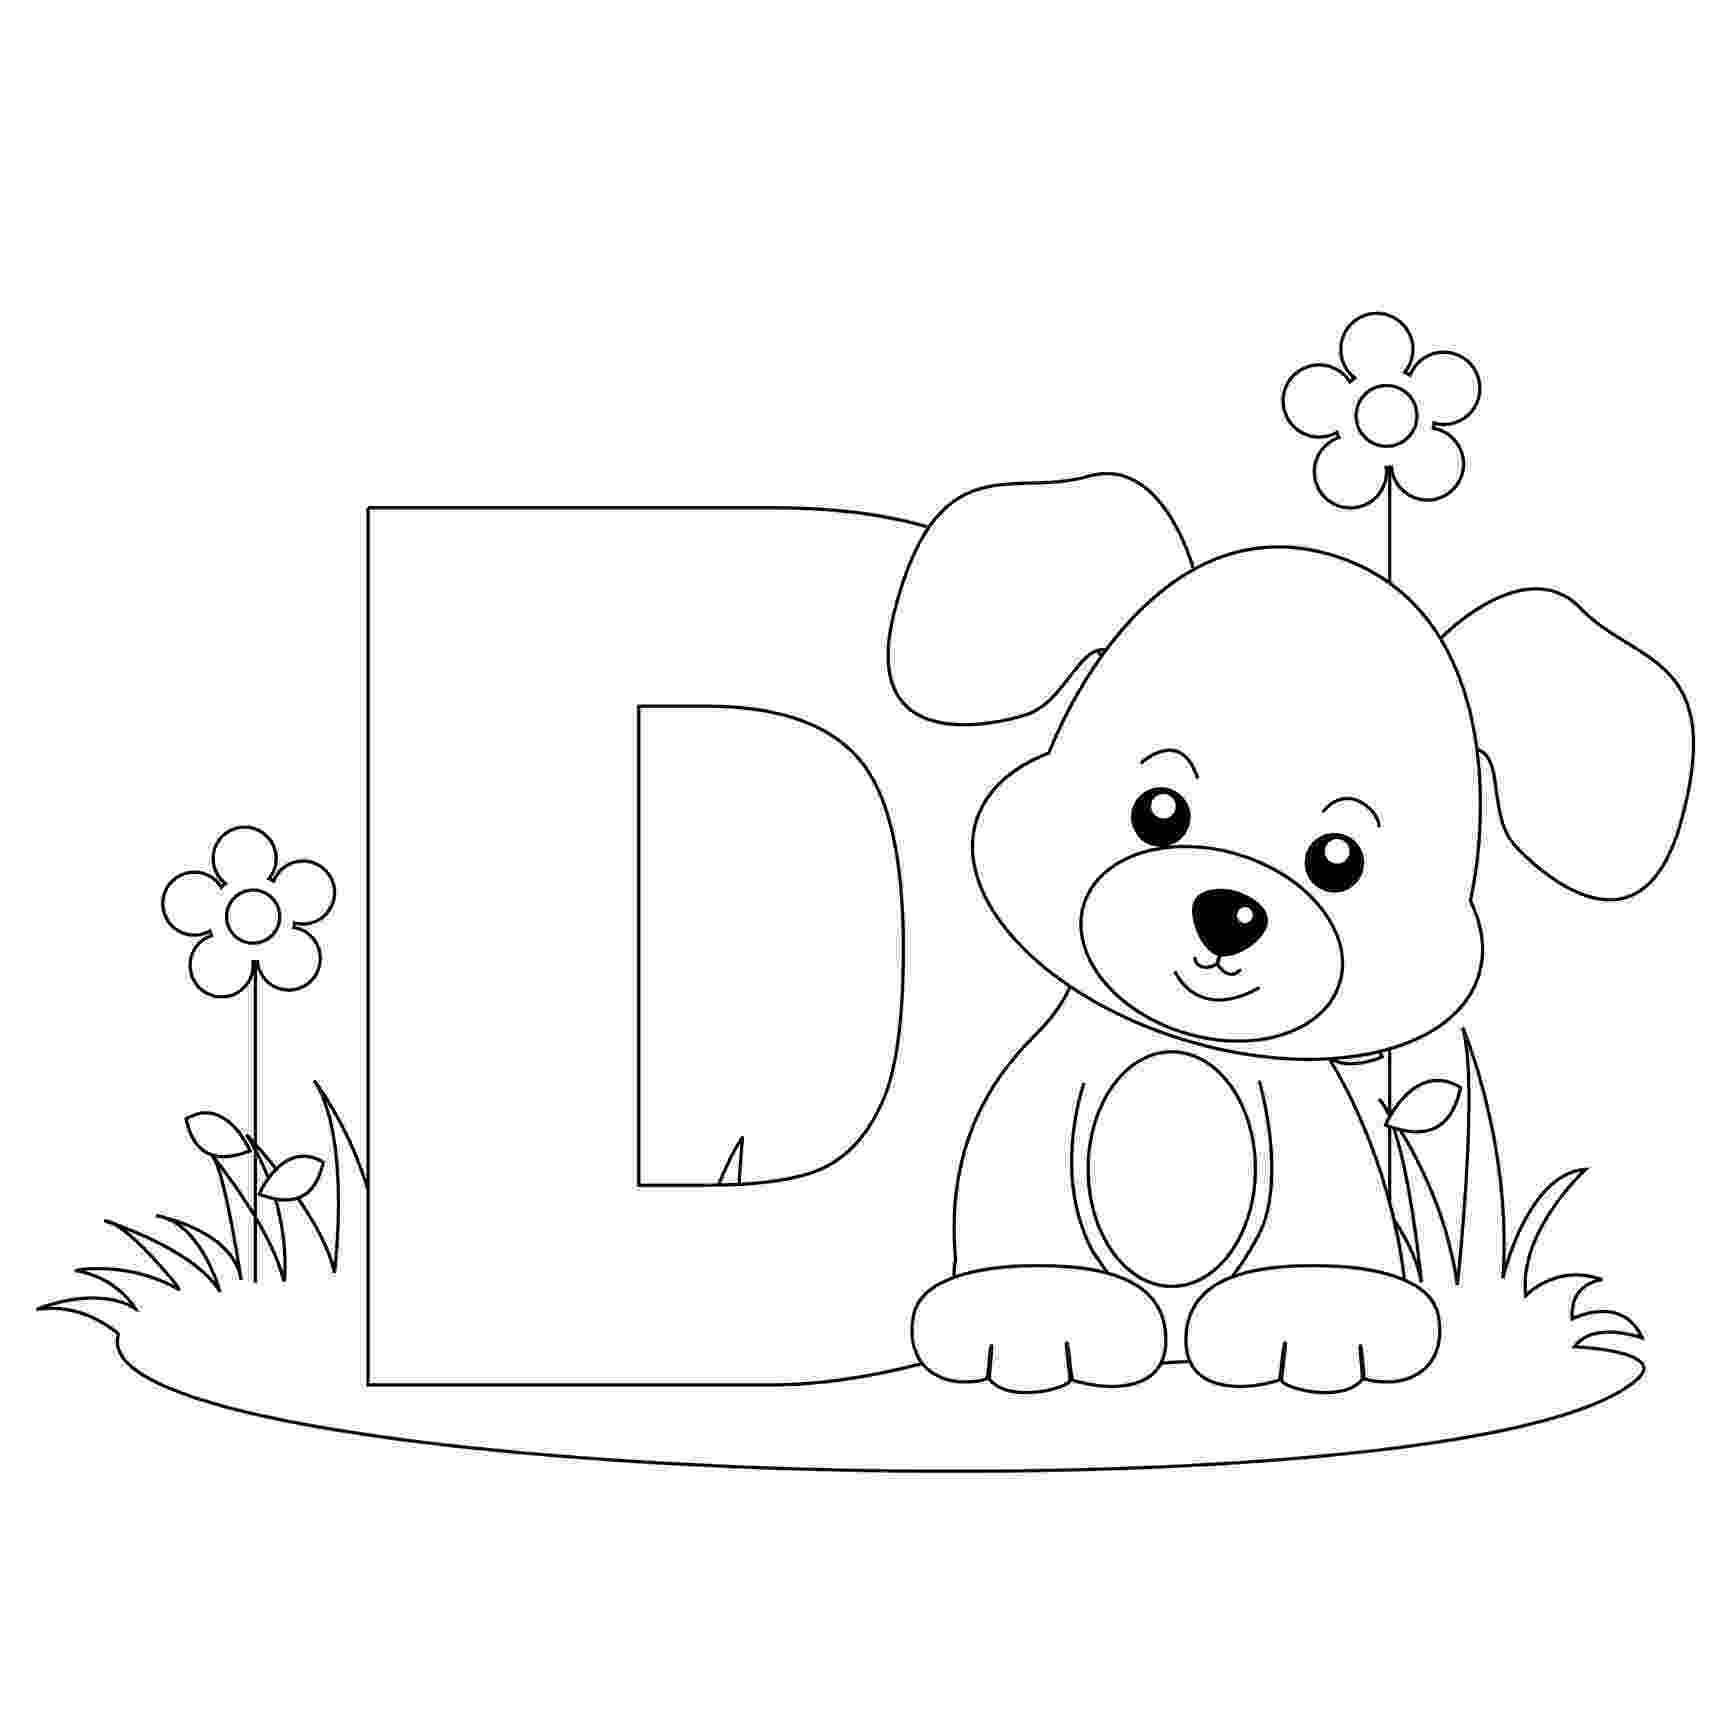 coloring pages of letters free printable alphabet coloring pages for kids best coloring pages of letters